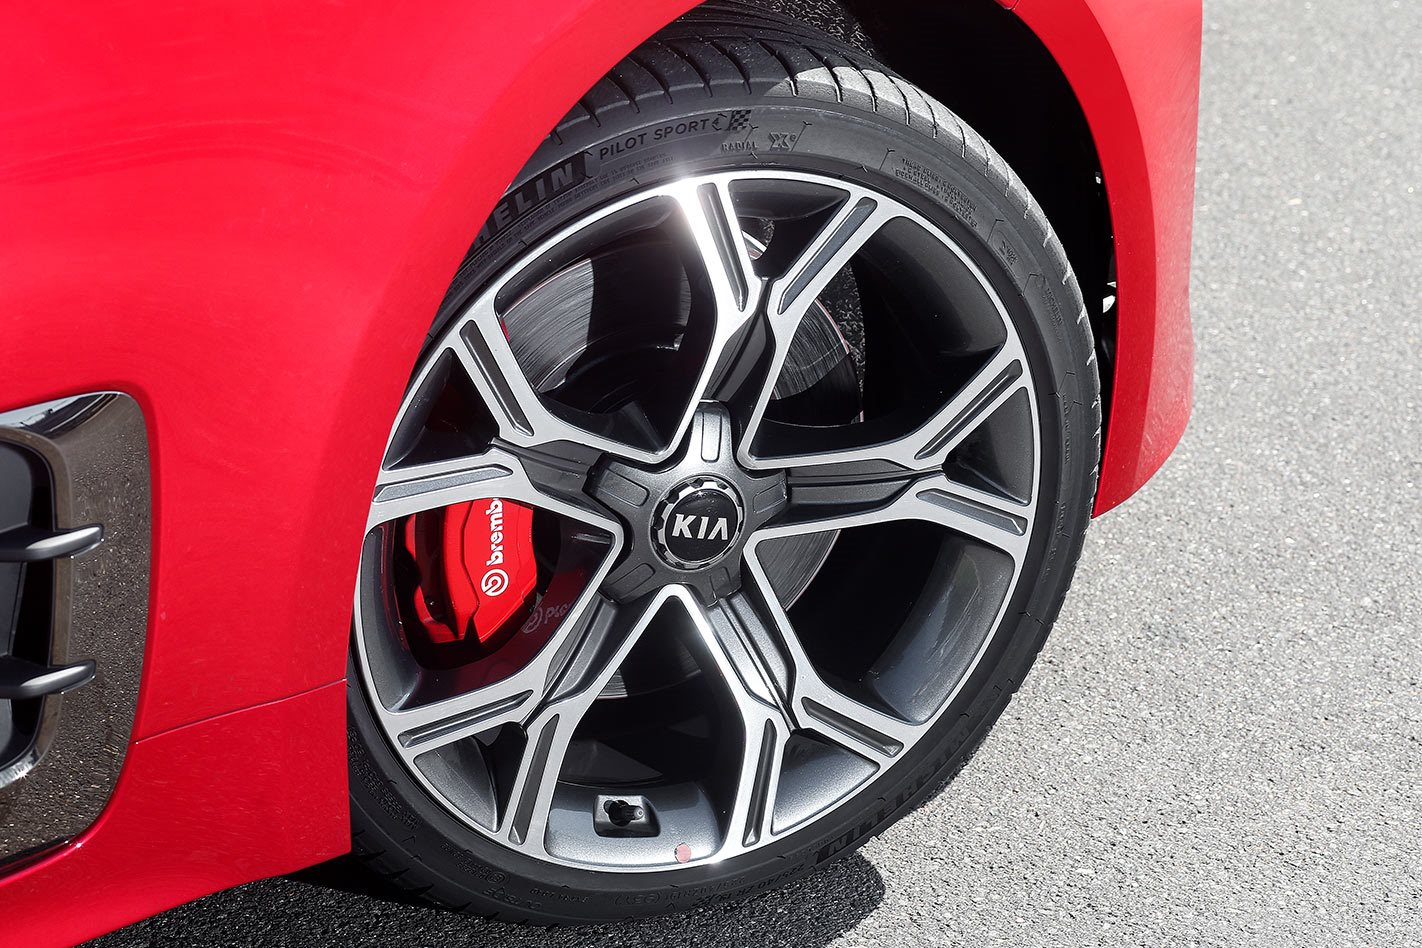 2017 Kia Stinger GT wheels